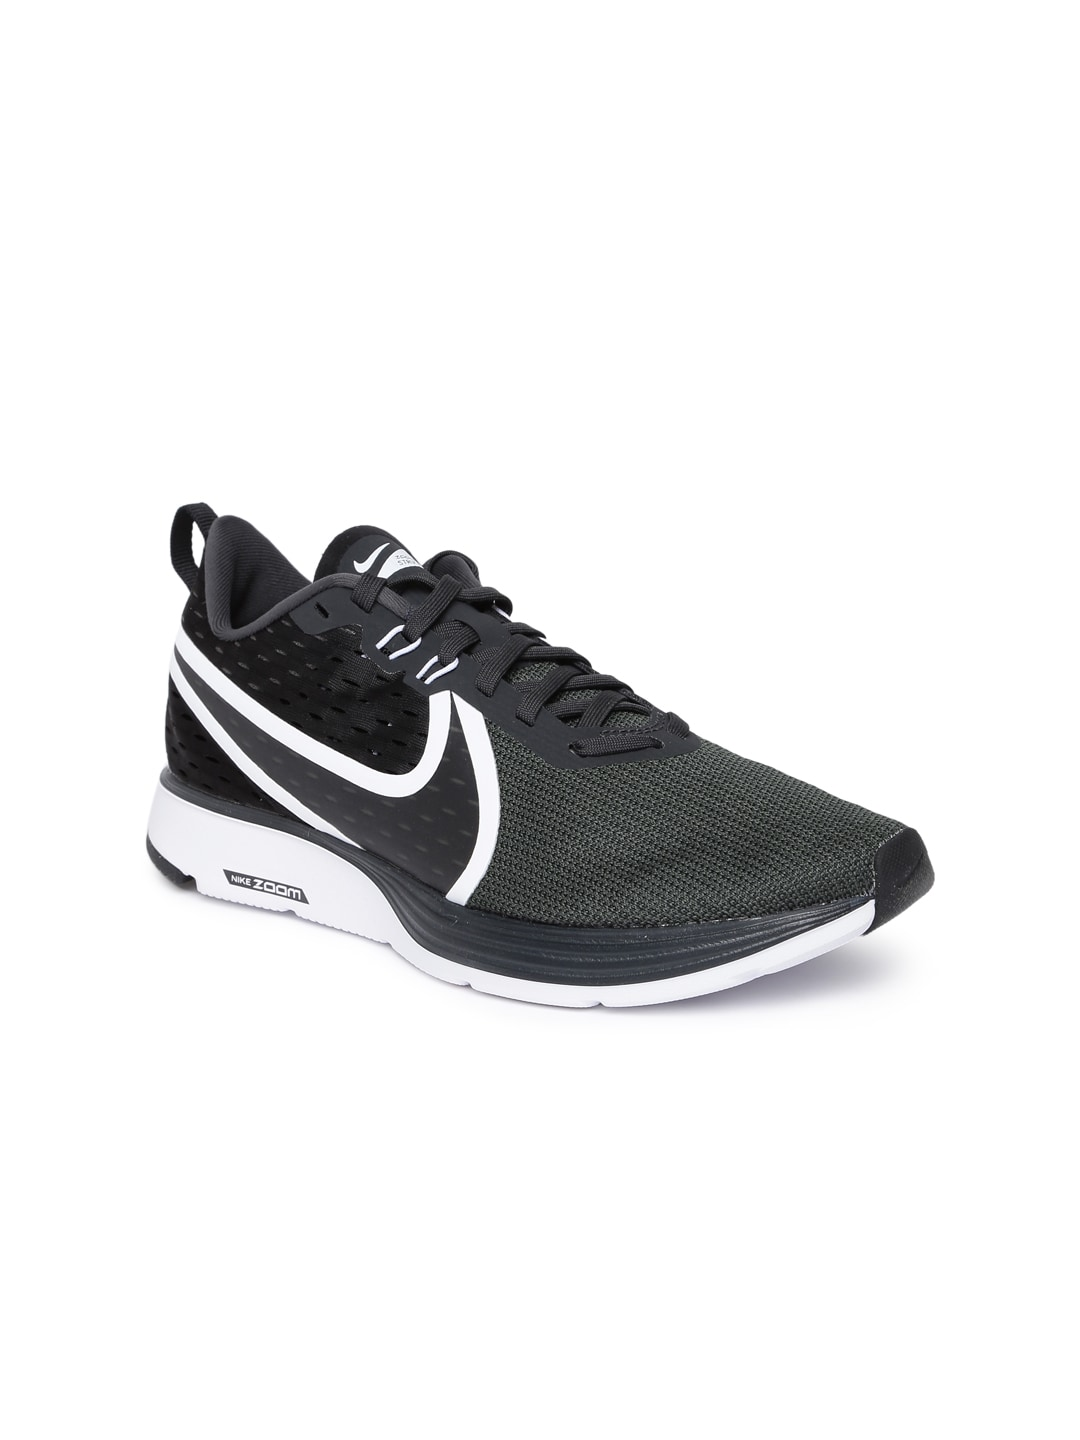 detailed look 79233 b5ca4 Nike Zoom Sports Shoes - Buy Nike Zoom Sports Shoes online in India